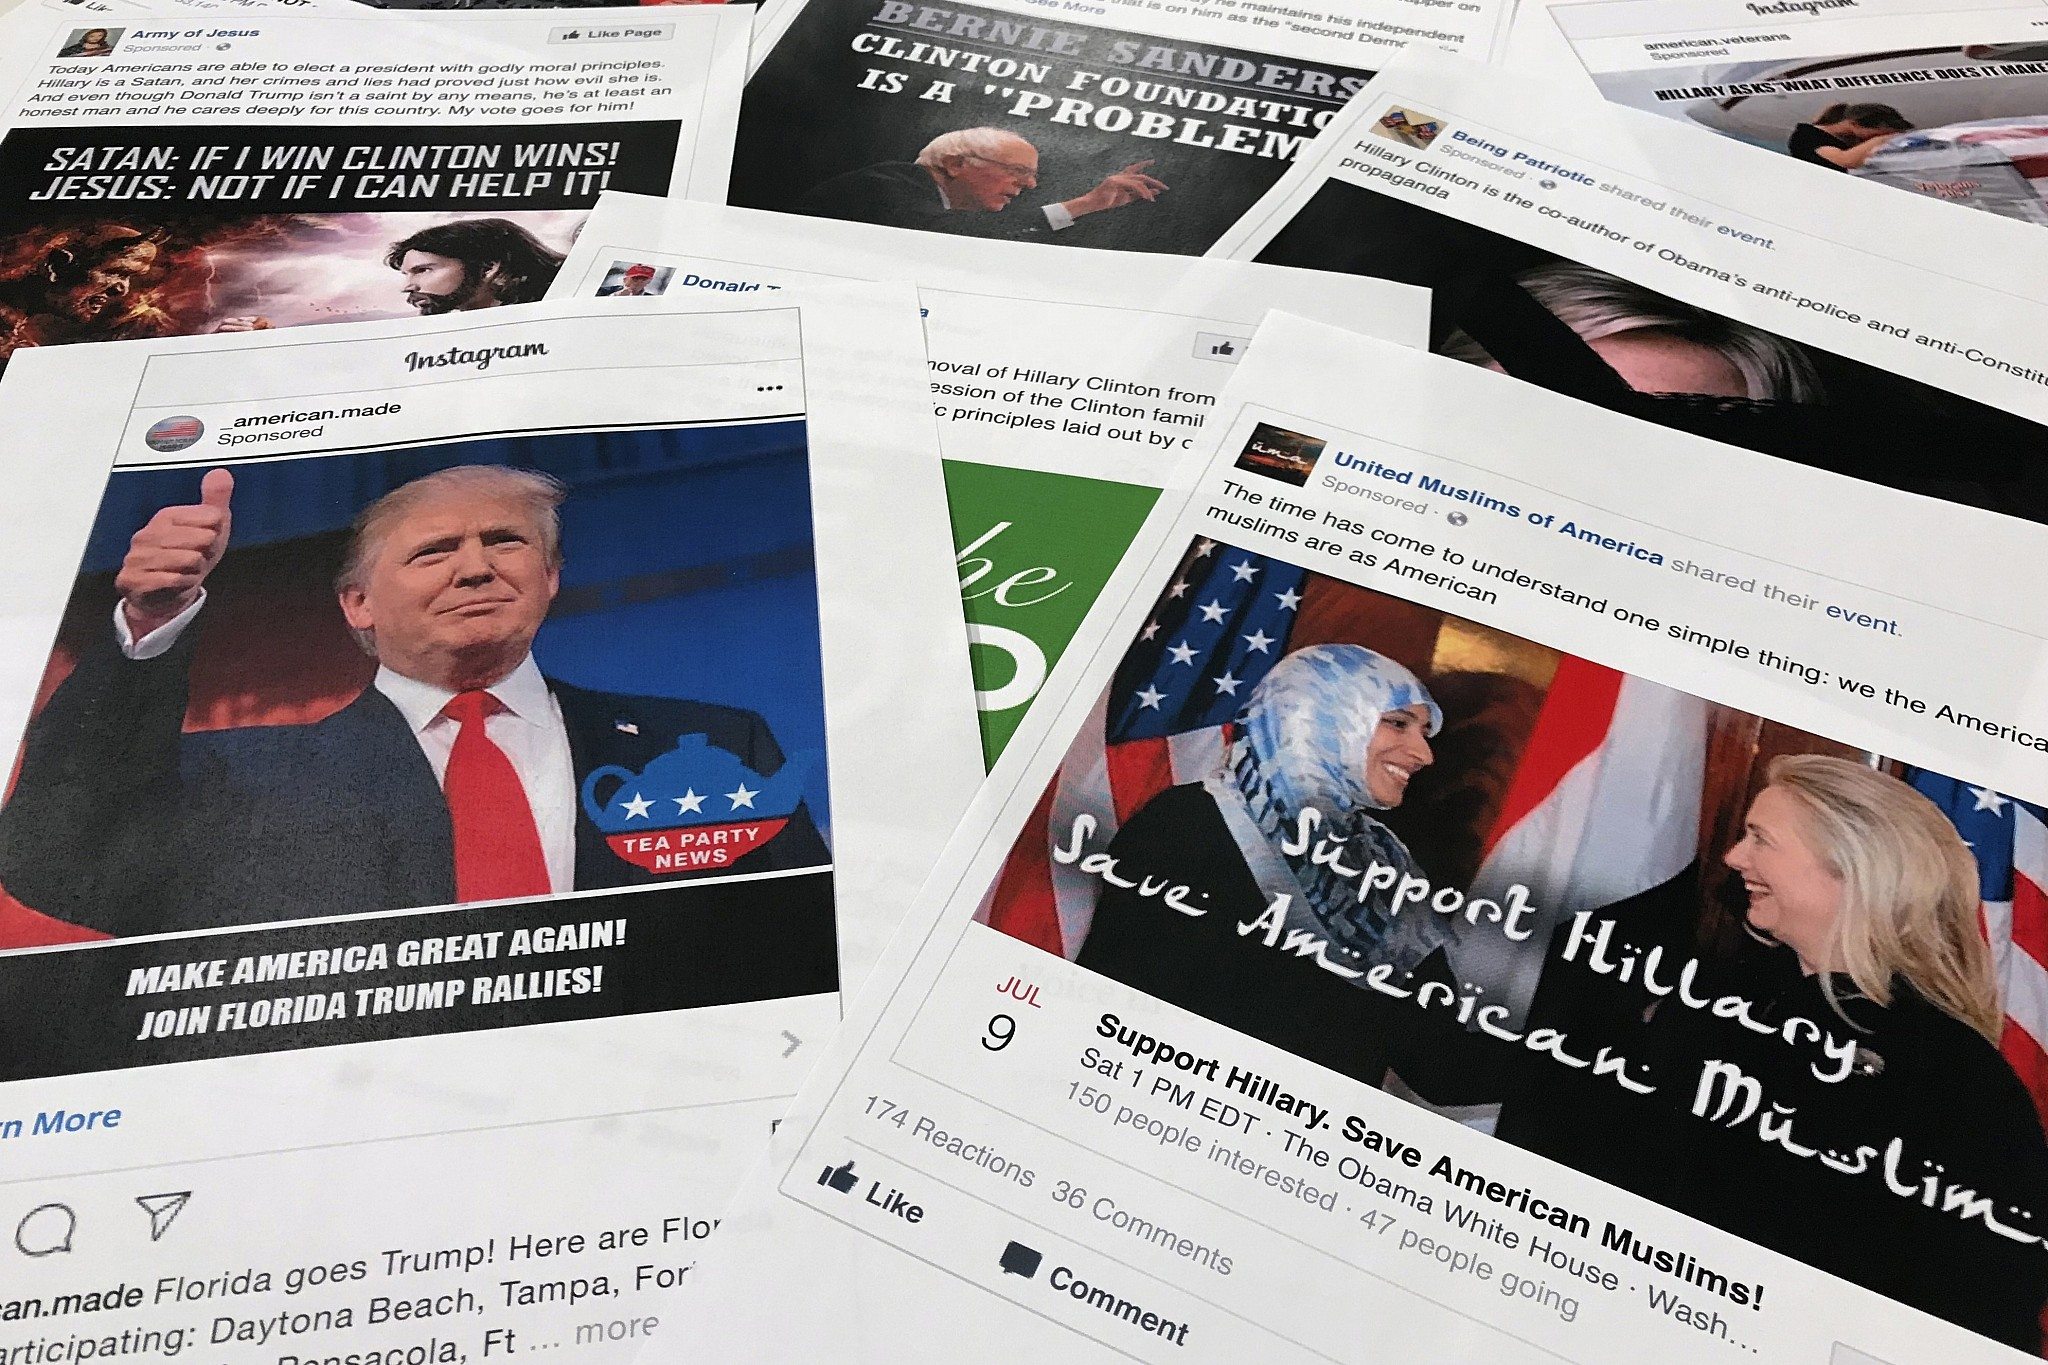 Russian Federation  used all major social media platforms to aid Trump